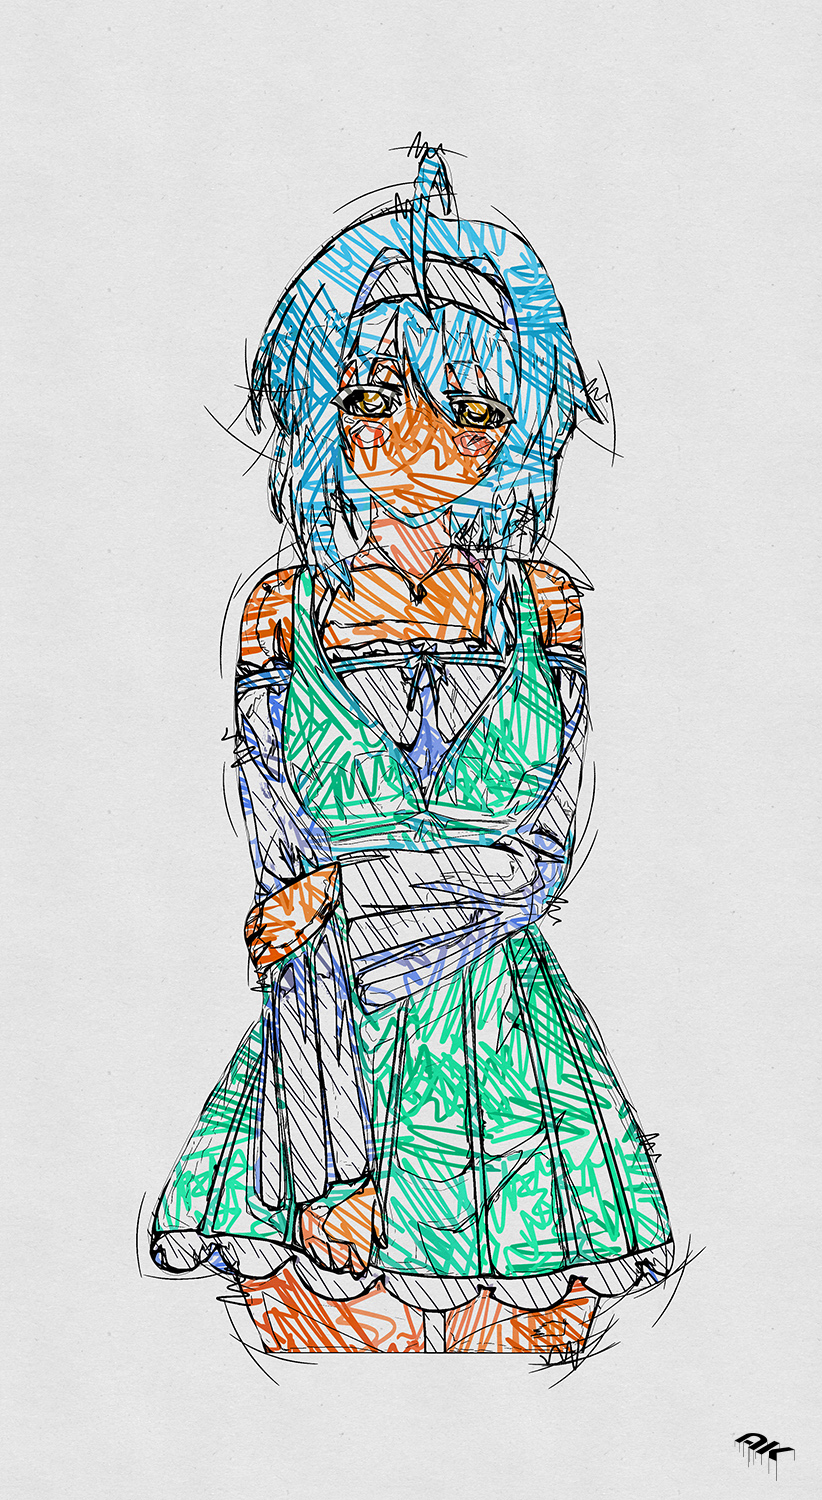 anime-character-4-copyright-andrew-knutt